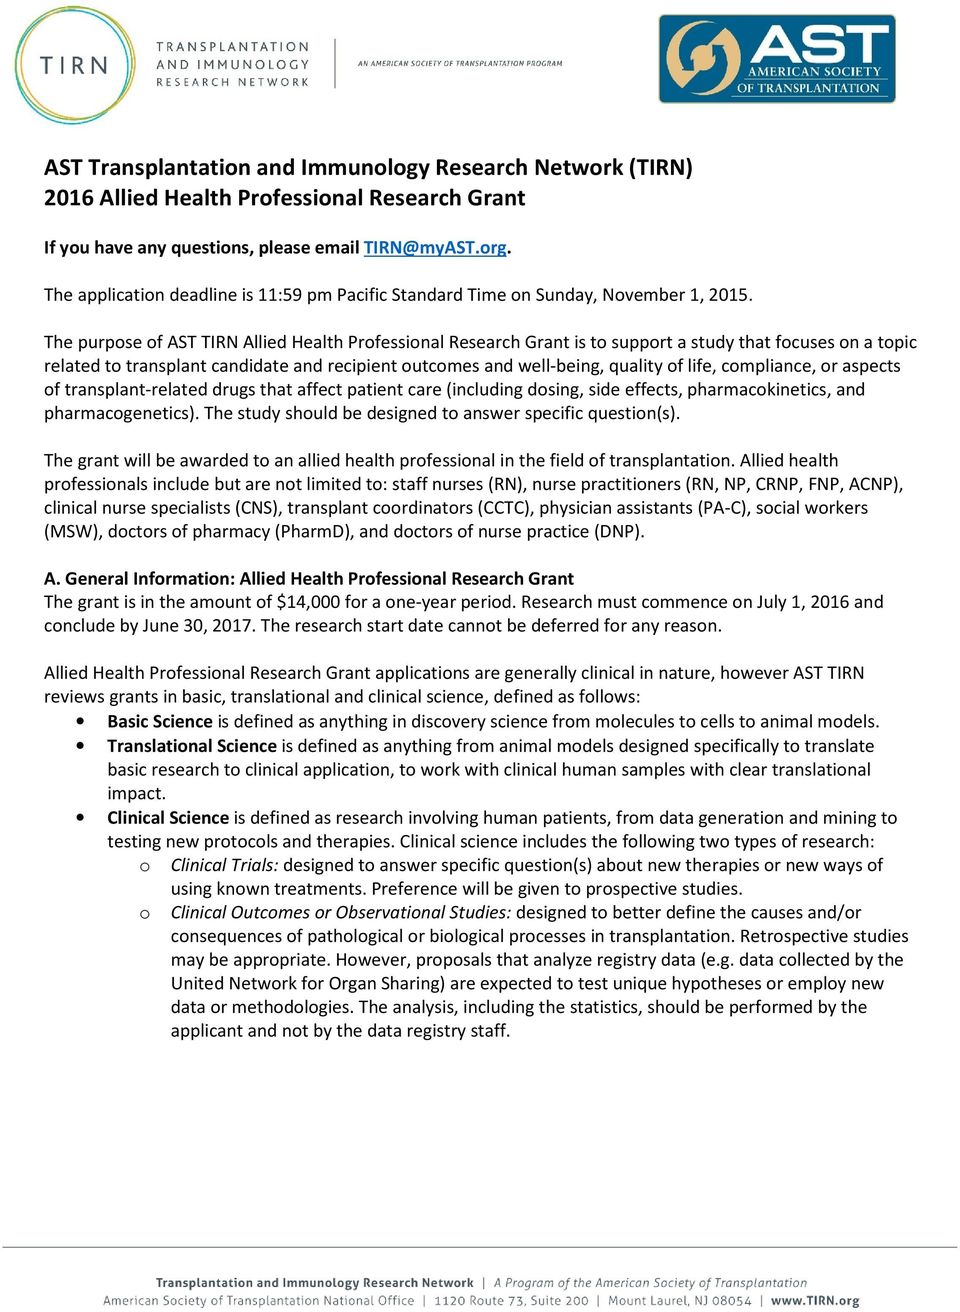 The purpose of AST TIRN Allied Health Professional Research Grant is to support a study that focuses on a topic related to transplant candidate and recipient outcomes and well-being, quality of life,